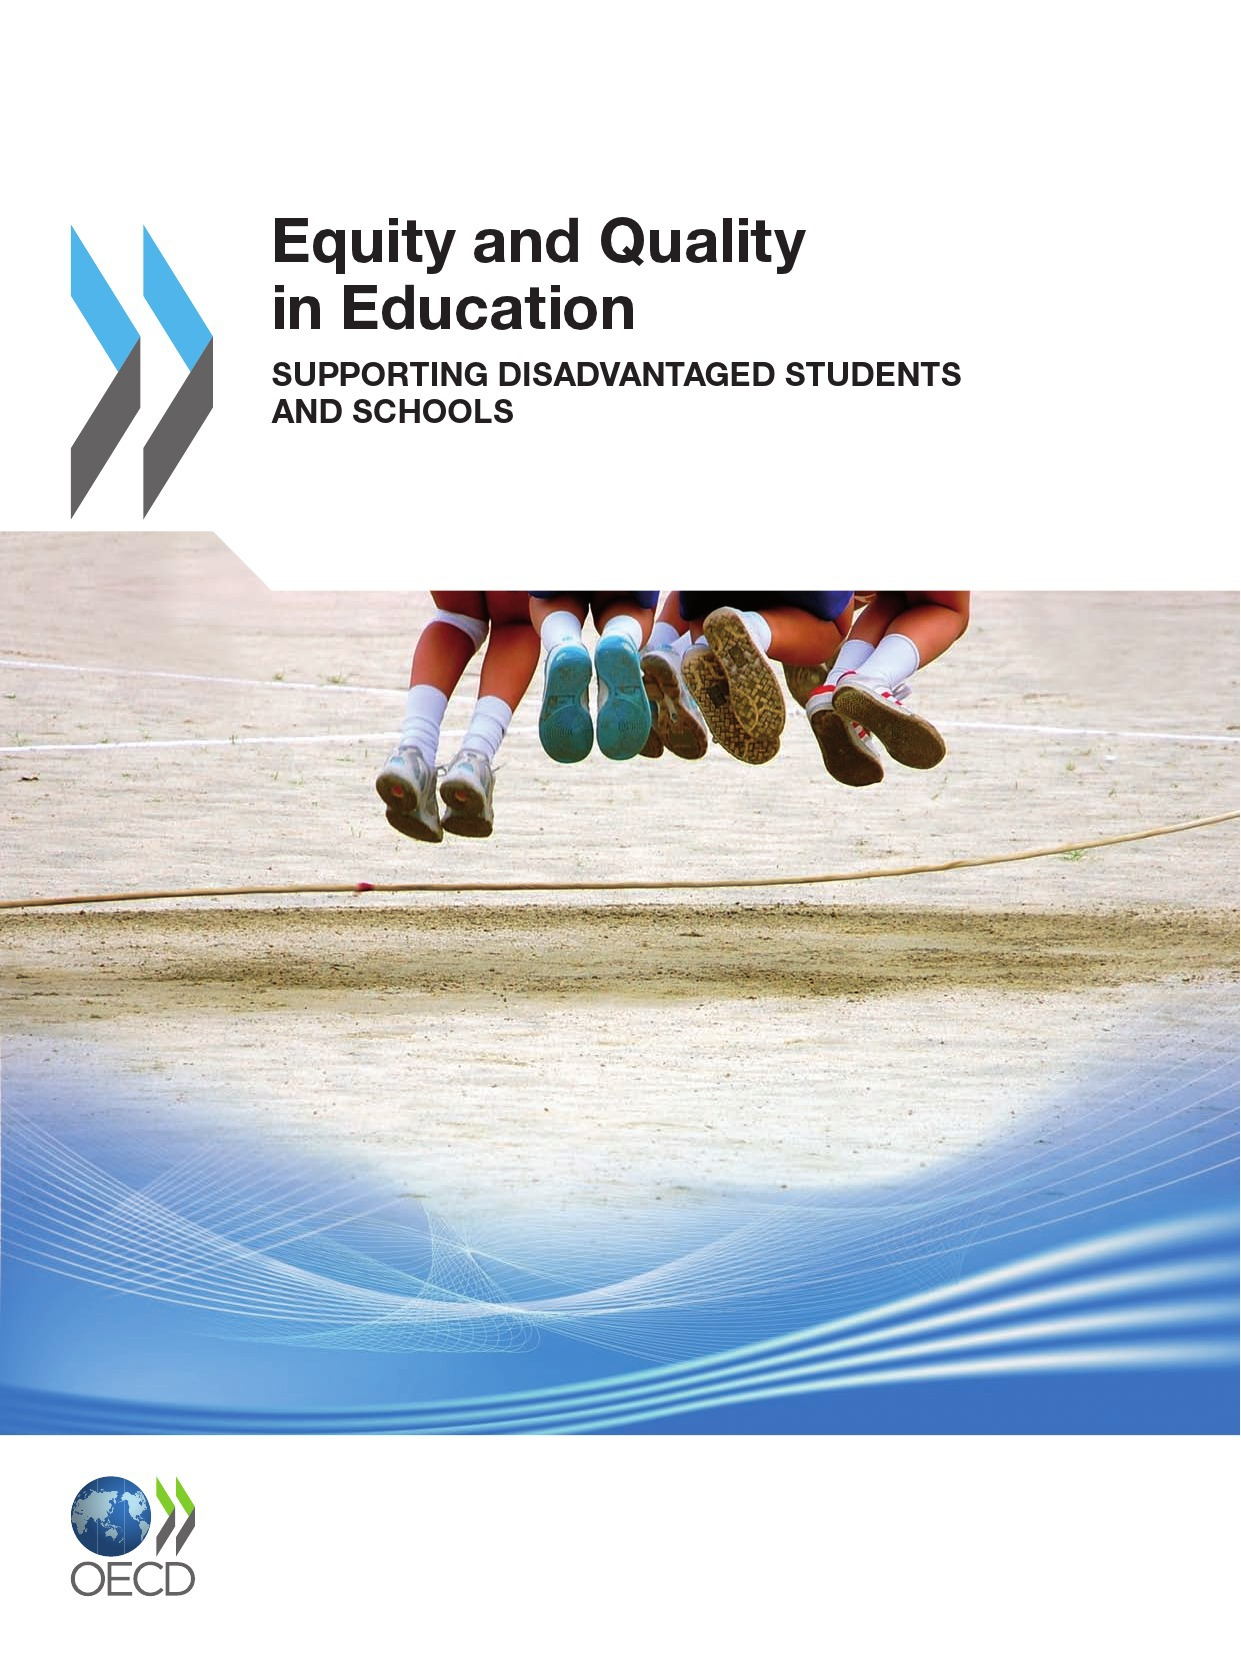 Equity and Quality in Education